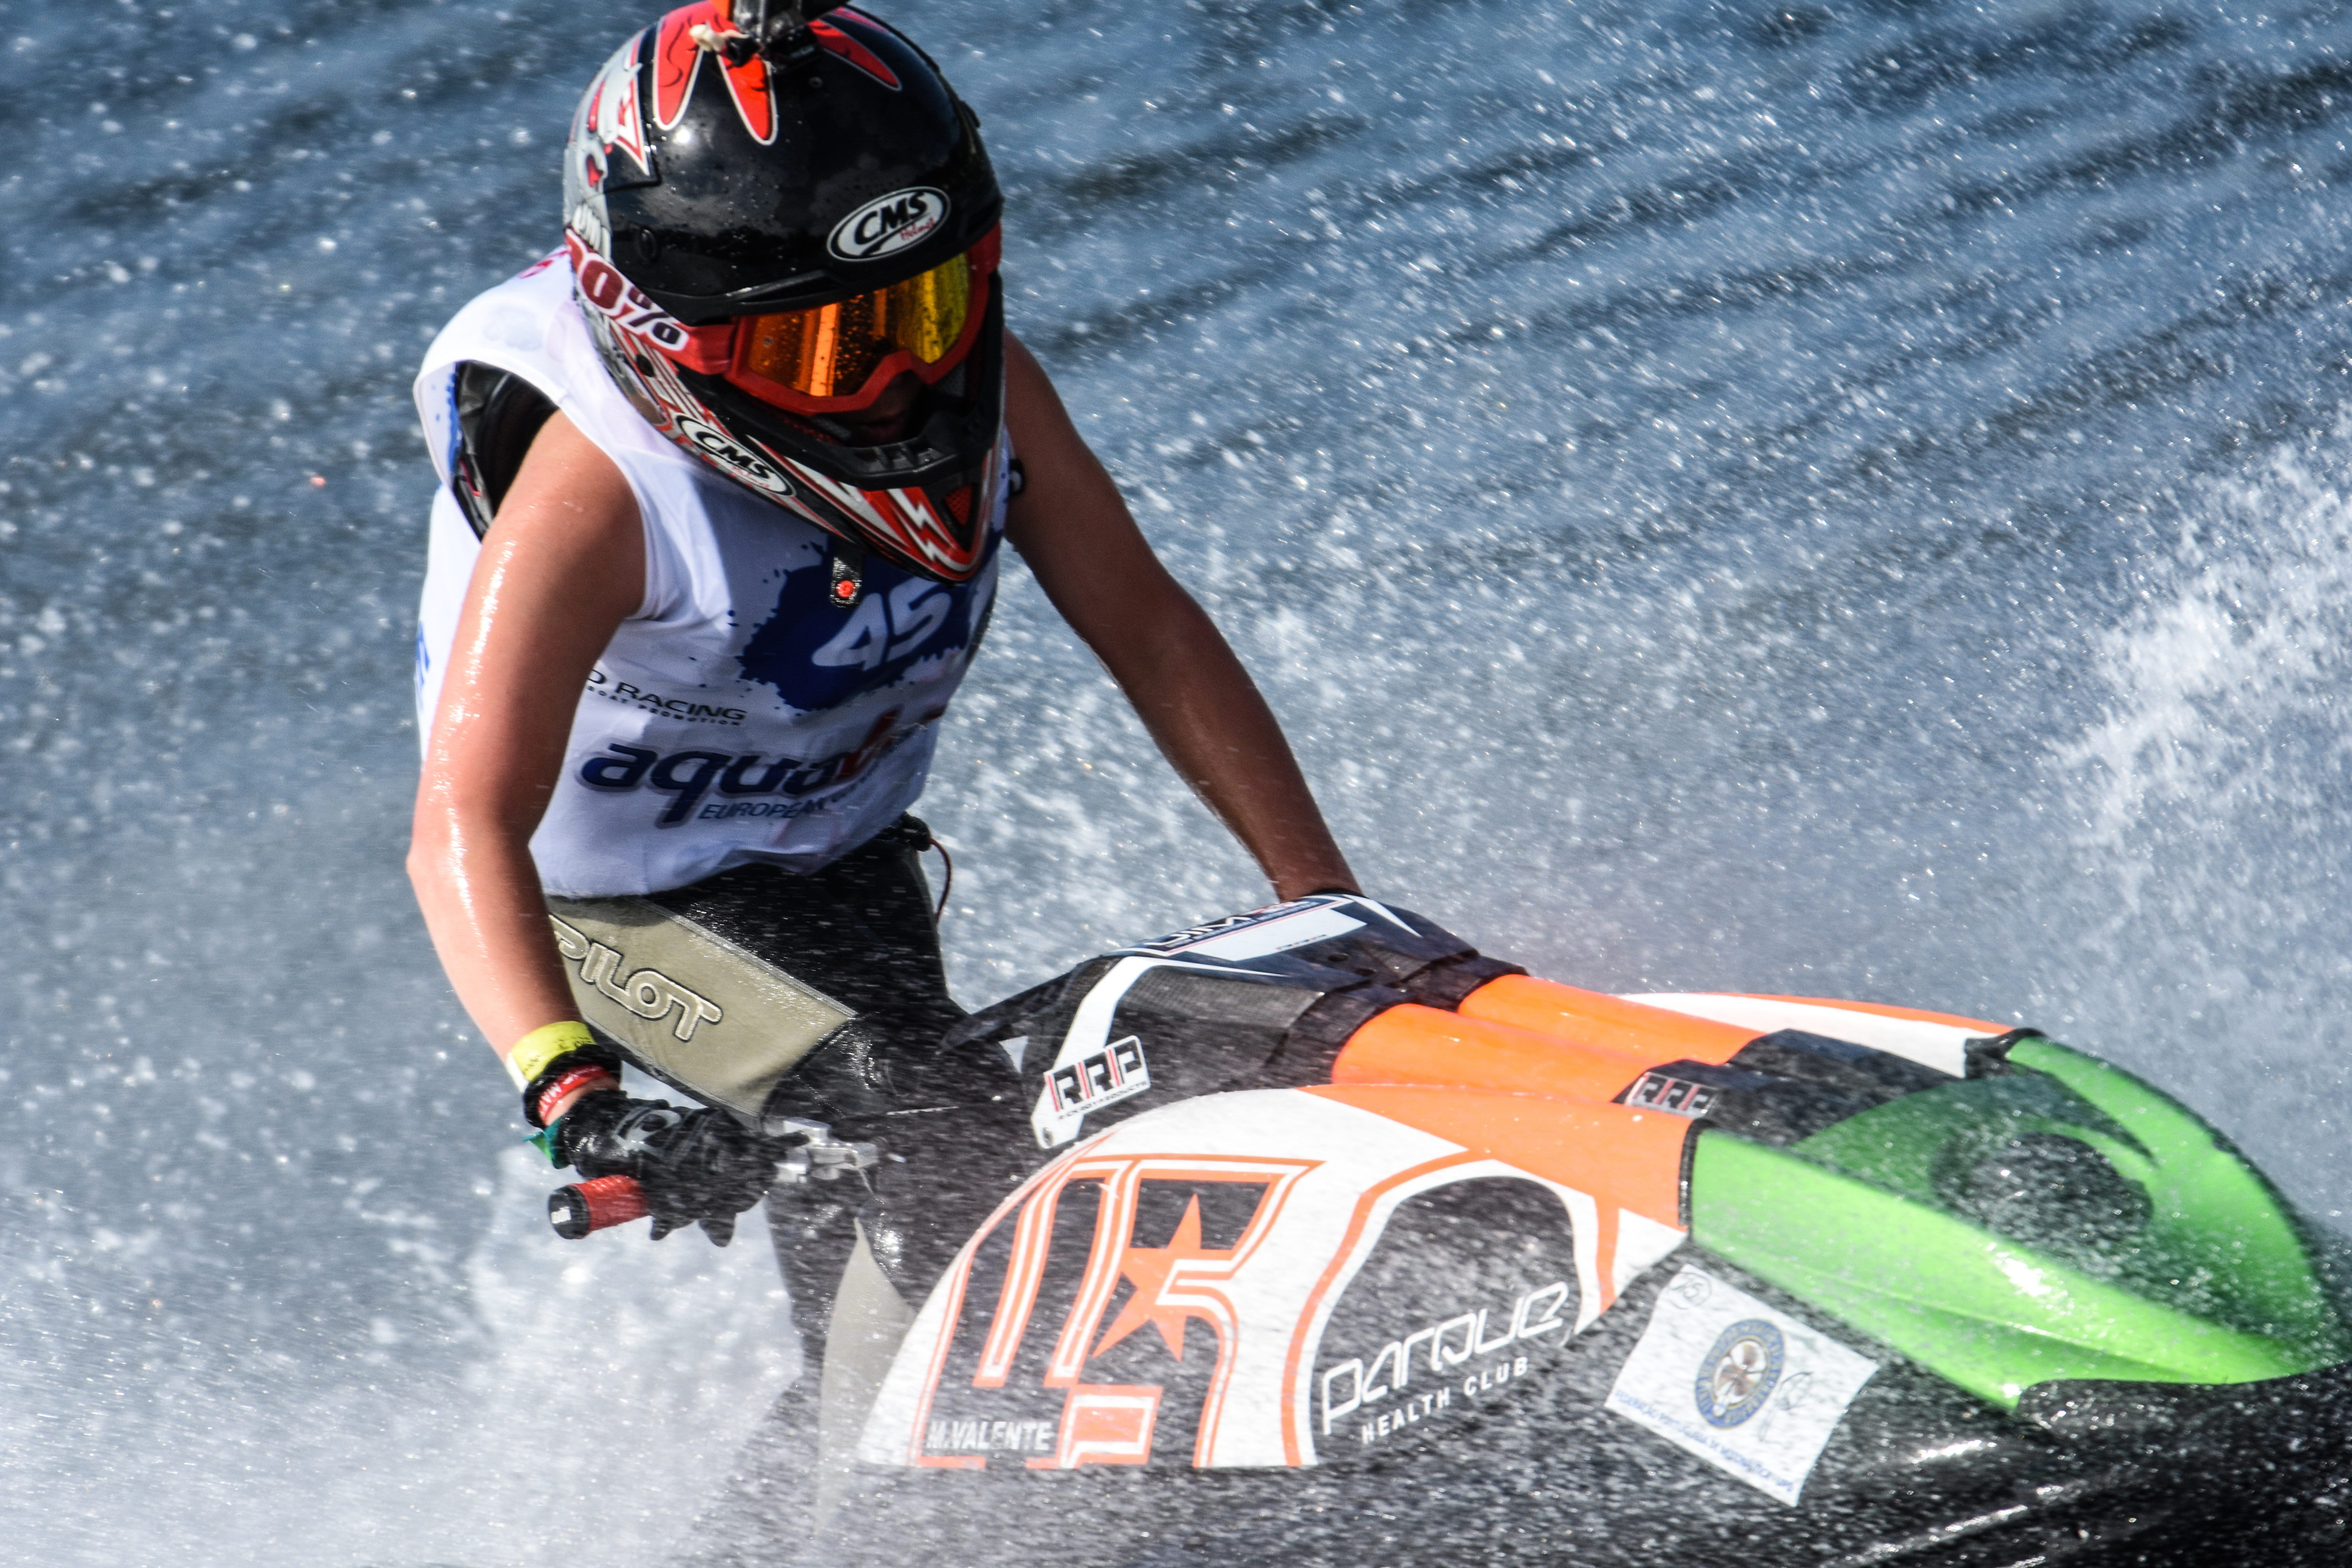 PENAFIEL TO HOST OPENING ROUND OF UIM-ABP AQUABIKE EUROPEAN CHAMPIONSHIP